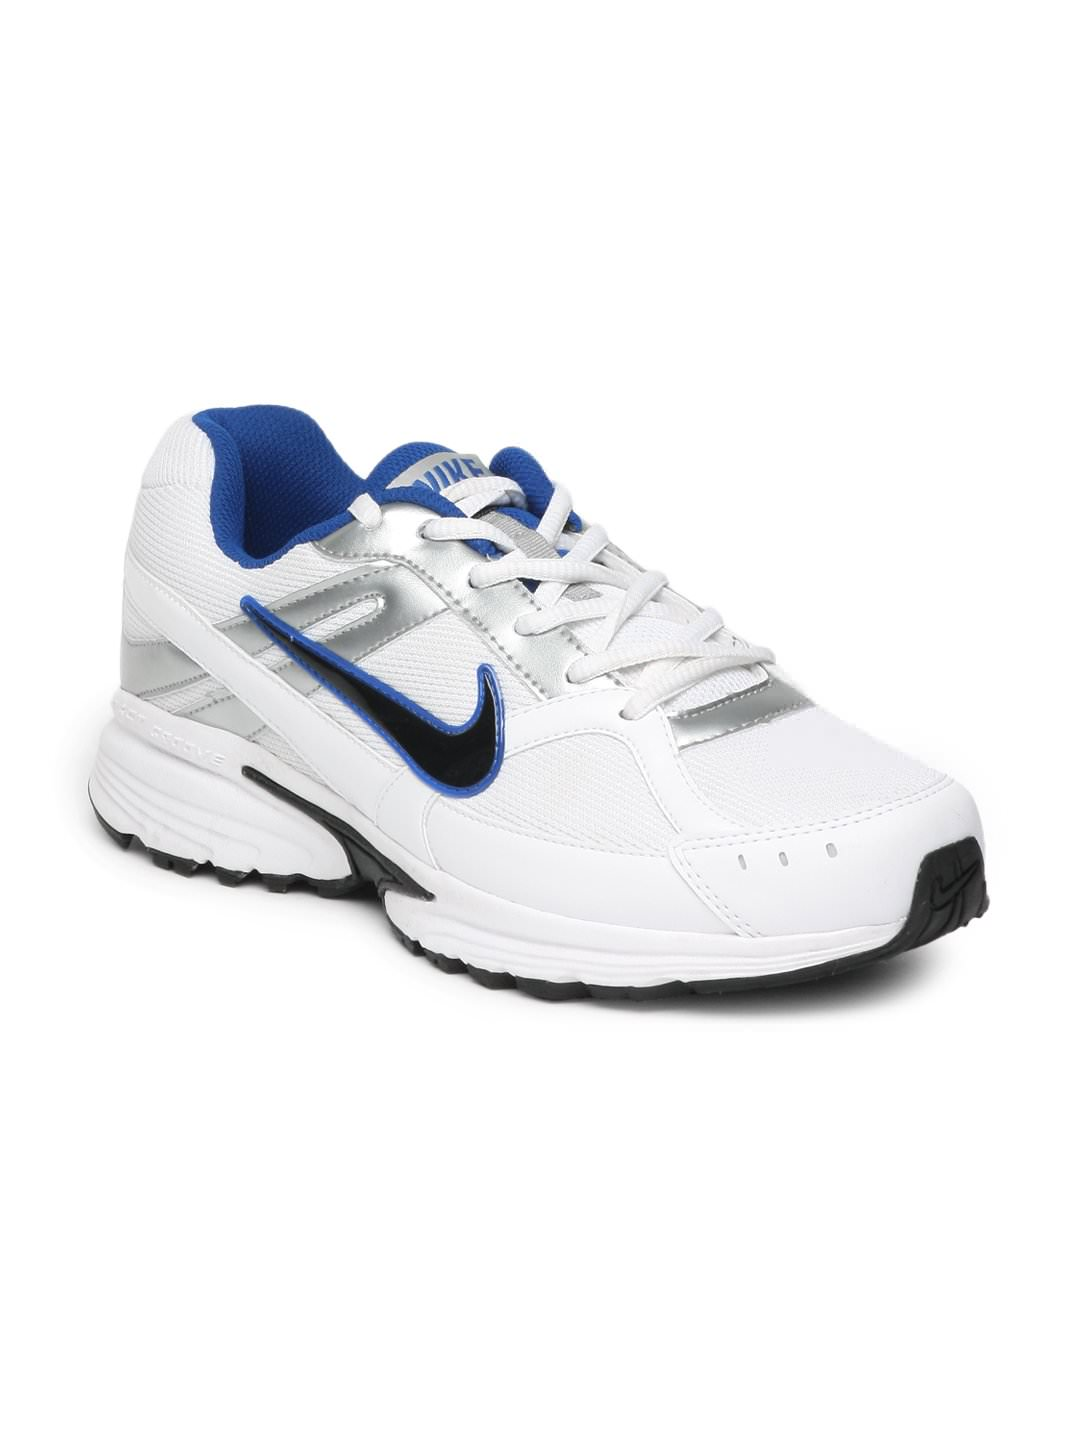 Tennis Shoes Nike For Women